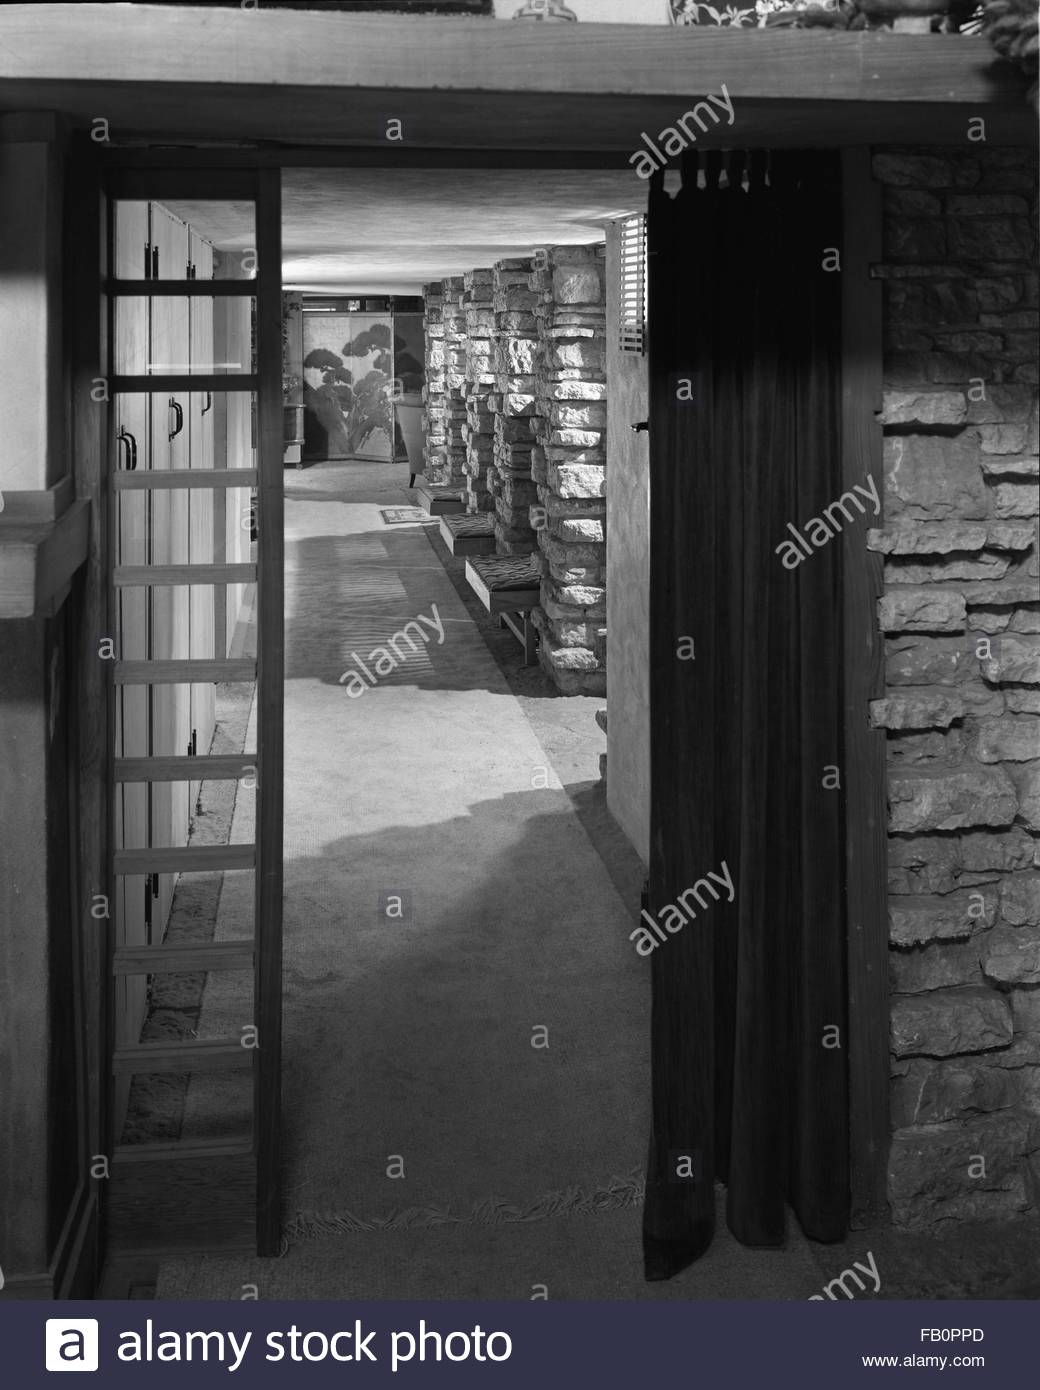 Taliesin East in Spring Green (Wis.), 1937 Dec. the loggia. - Stock Image